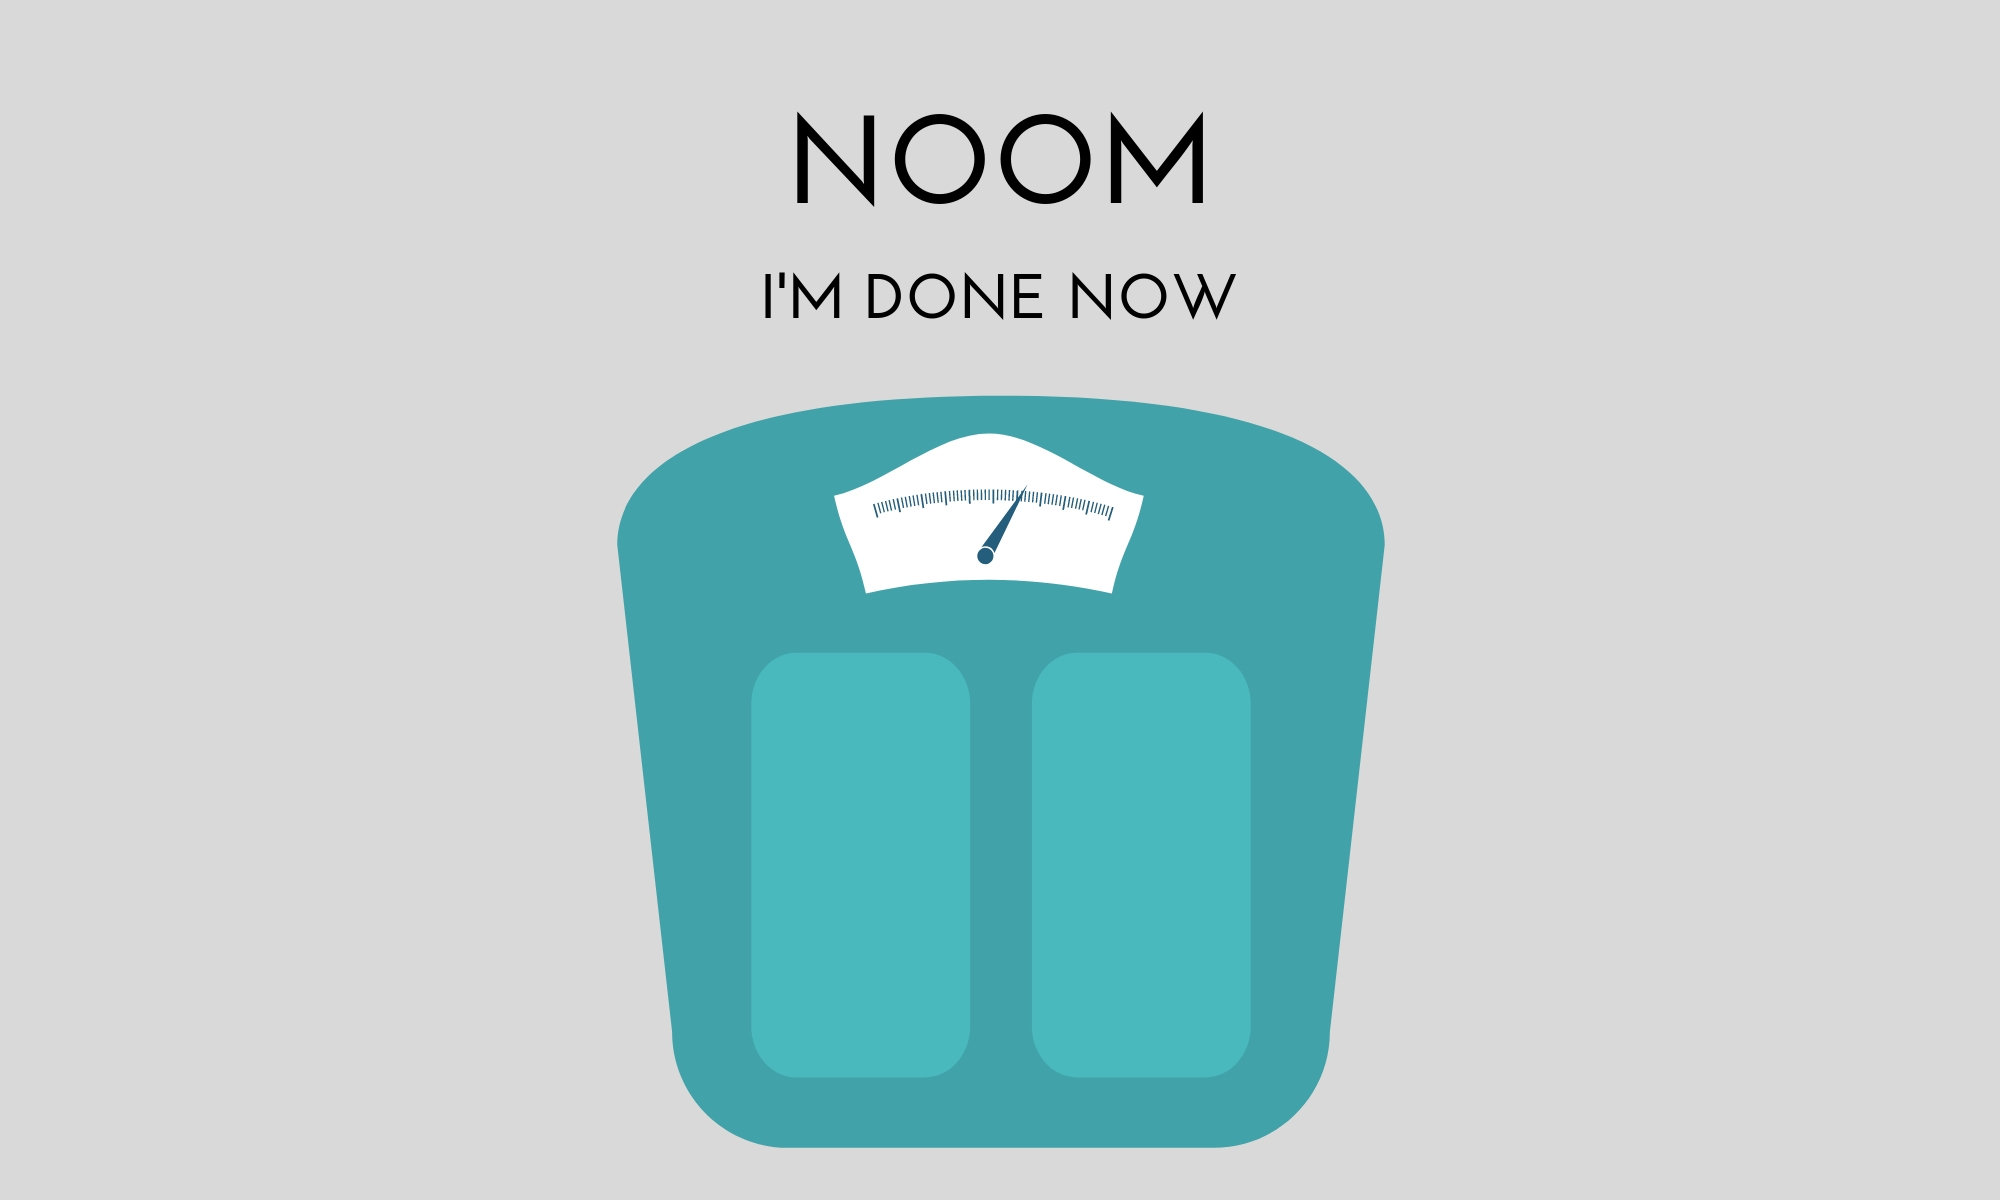 noom weight loss app review header